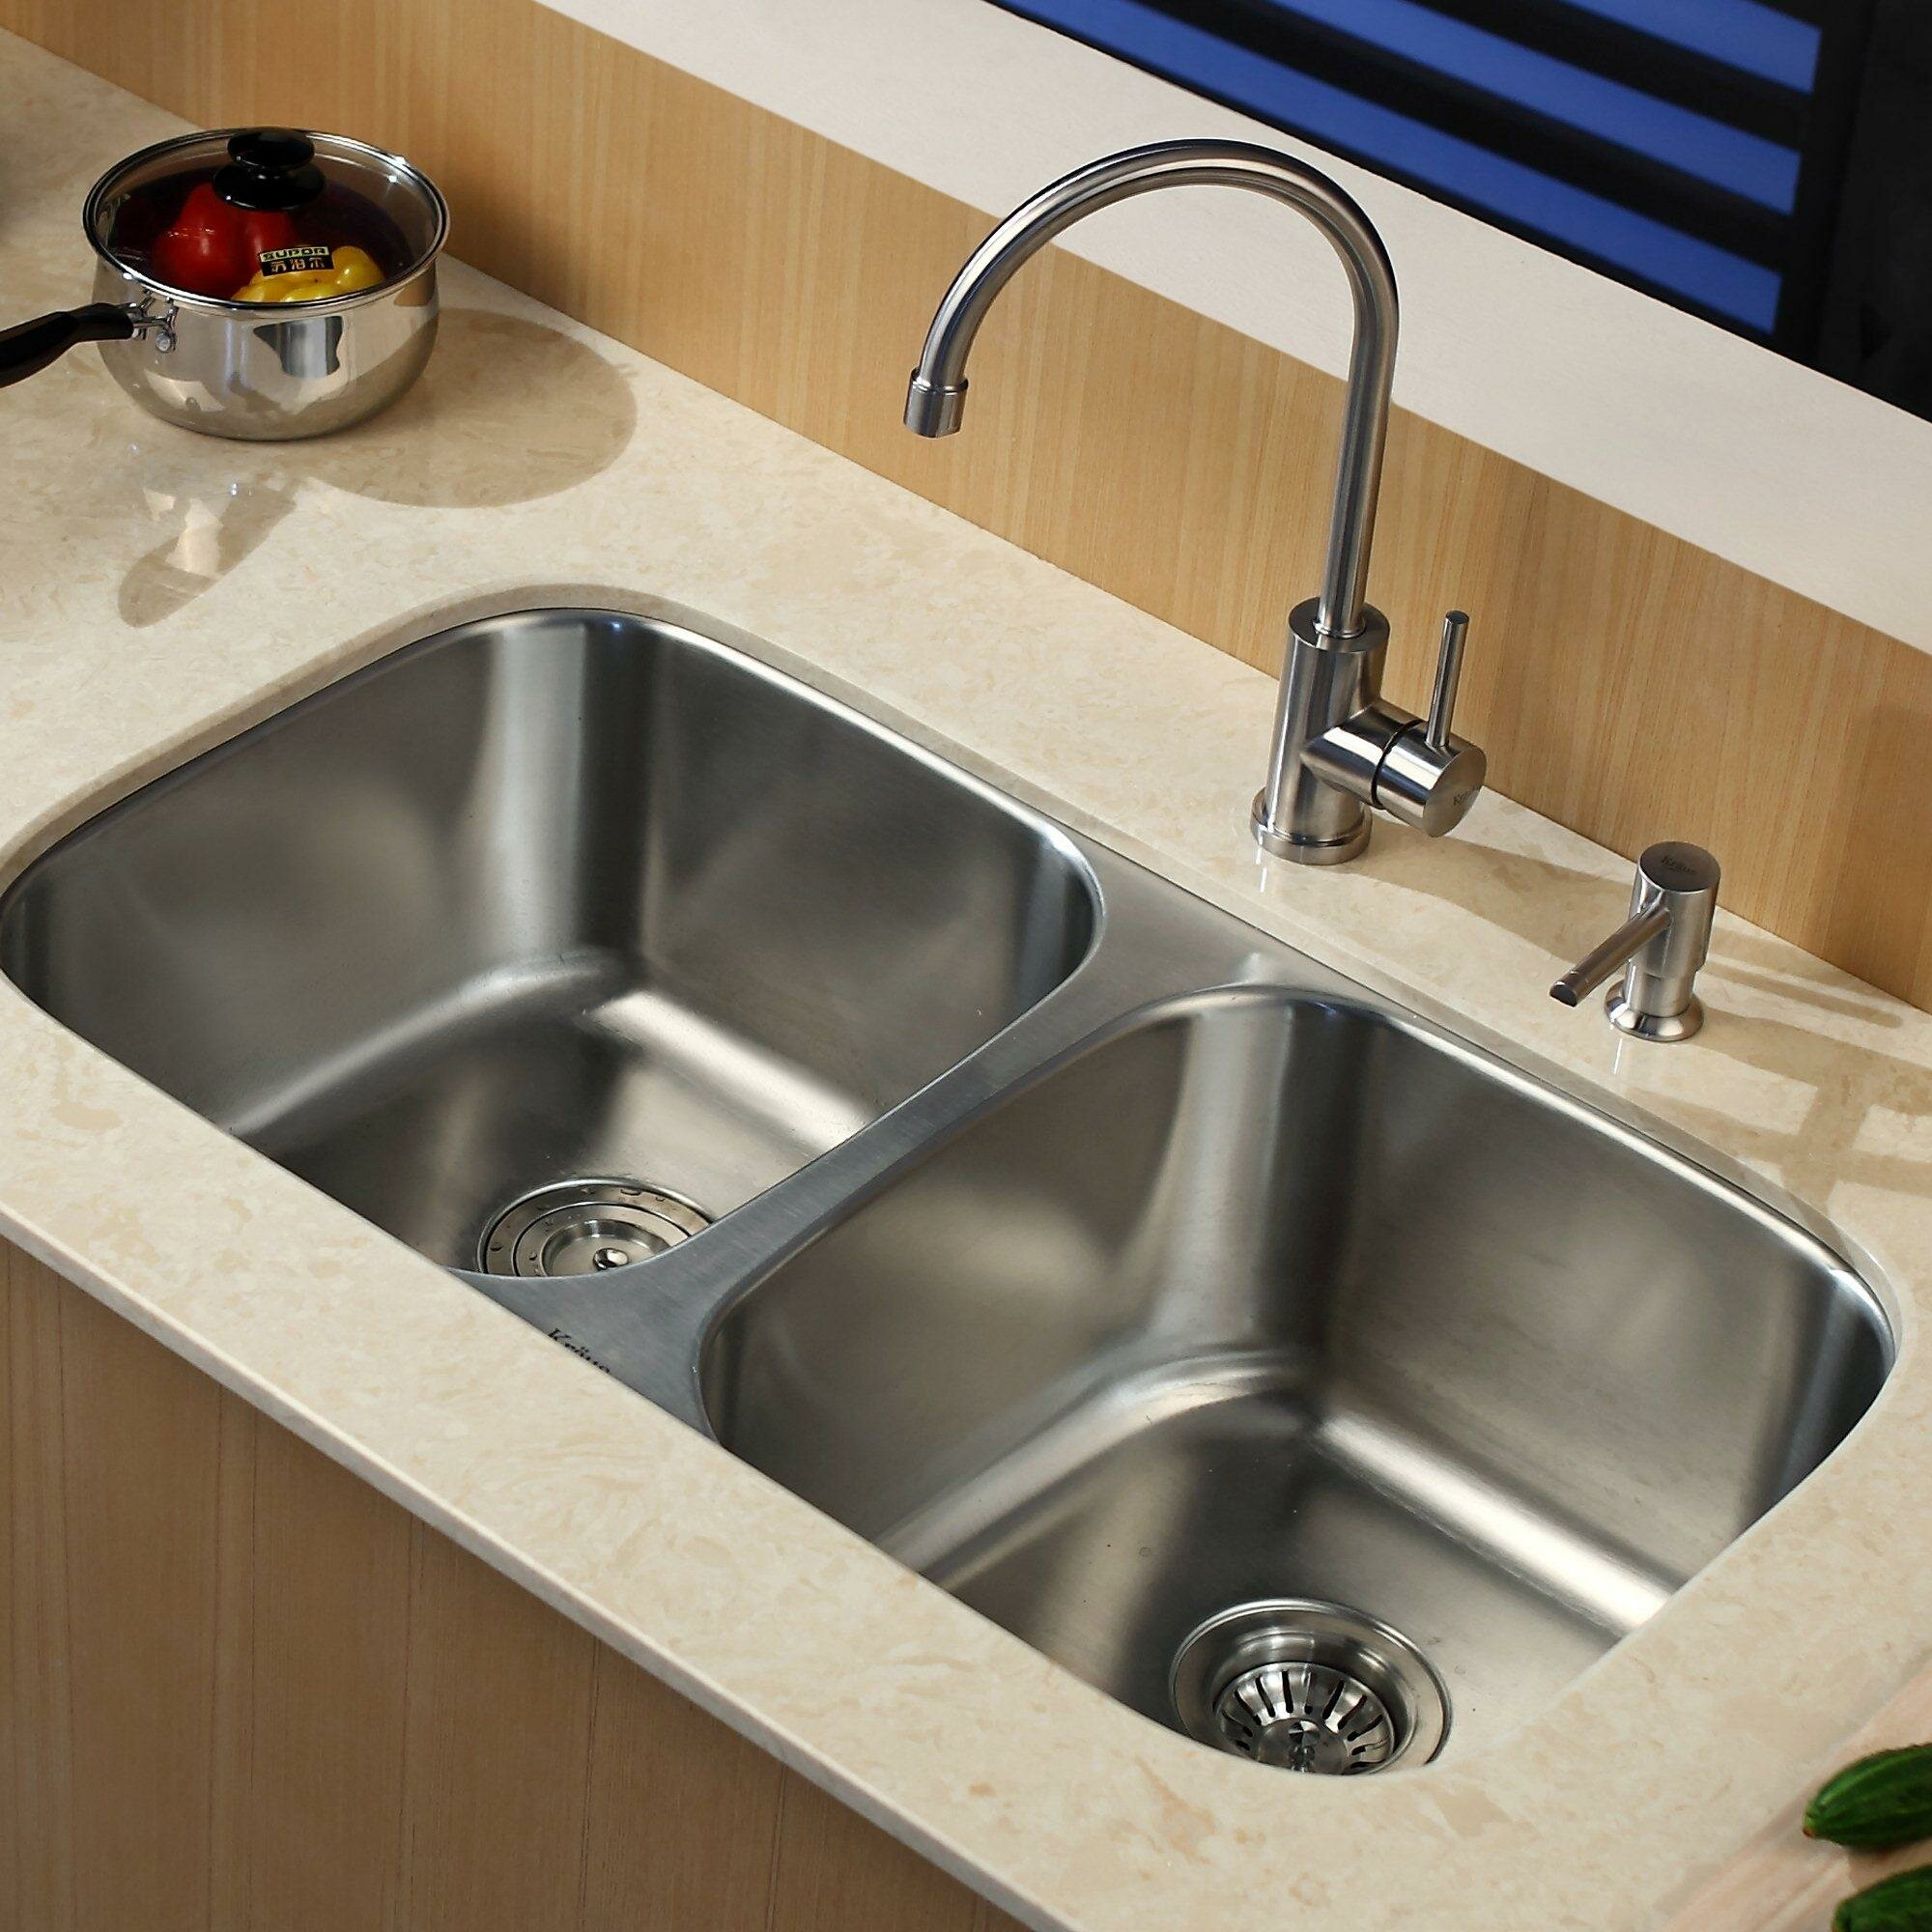 Undermount Kitchen Sinks Double Bowl Undermount Kitchen Sink